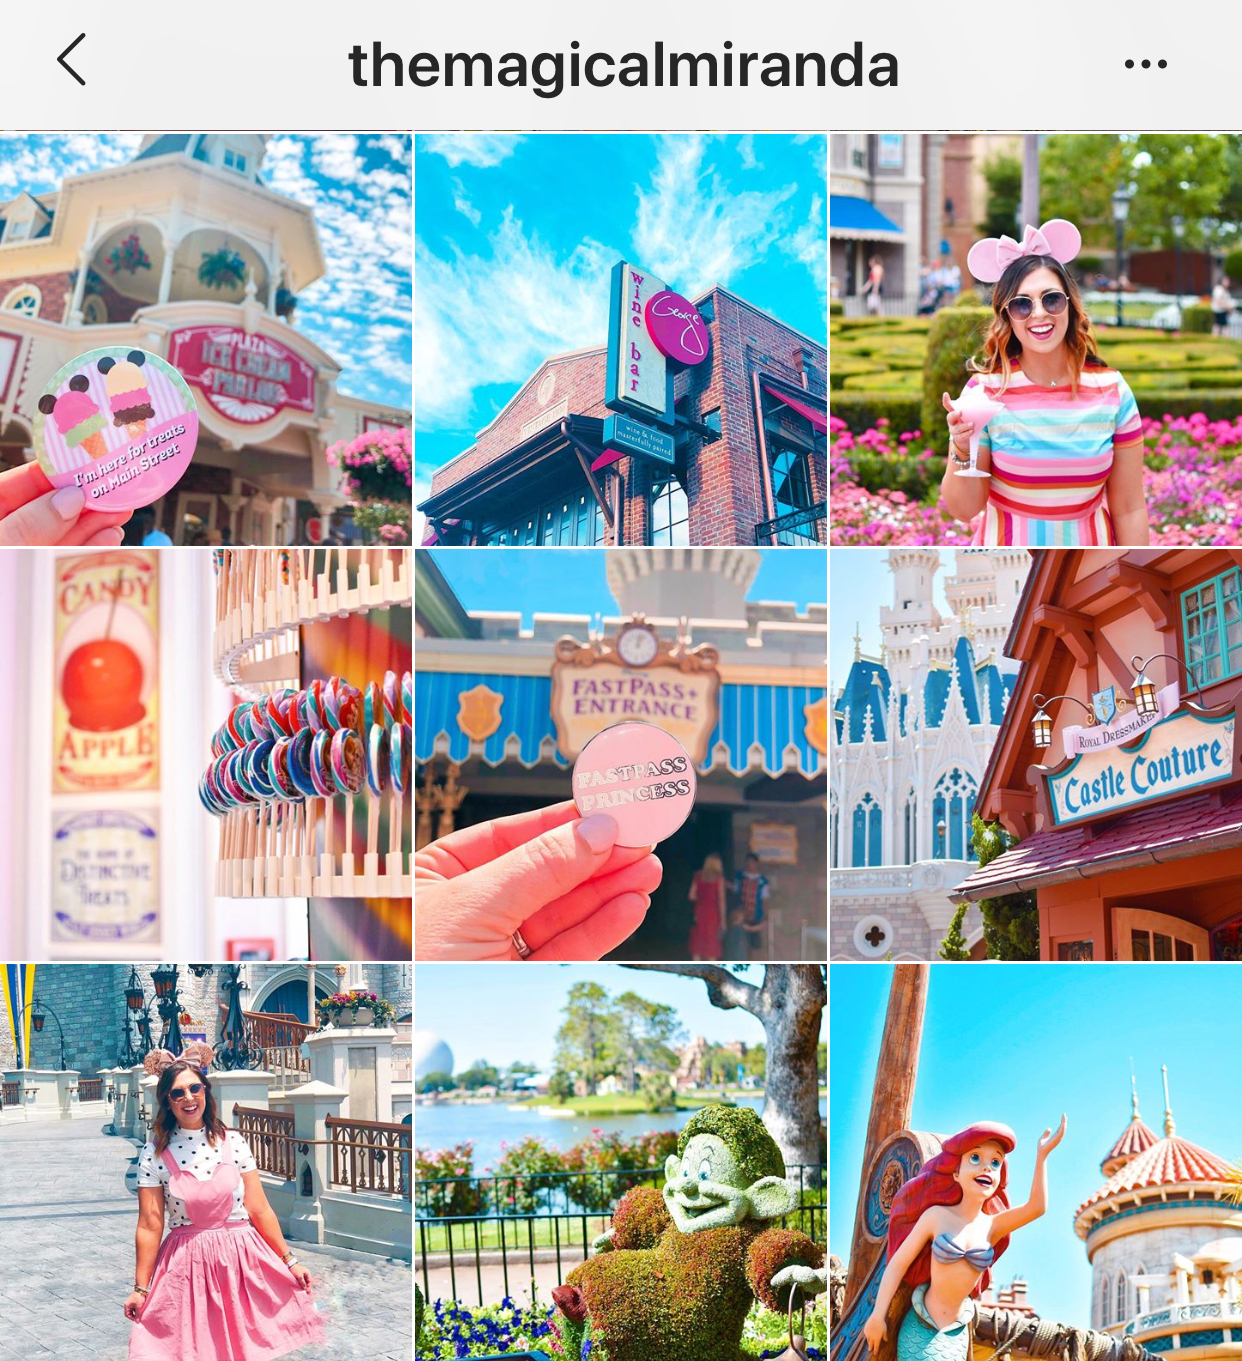 The Magical Miranda instagram